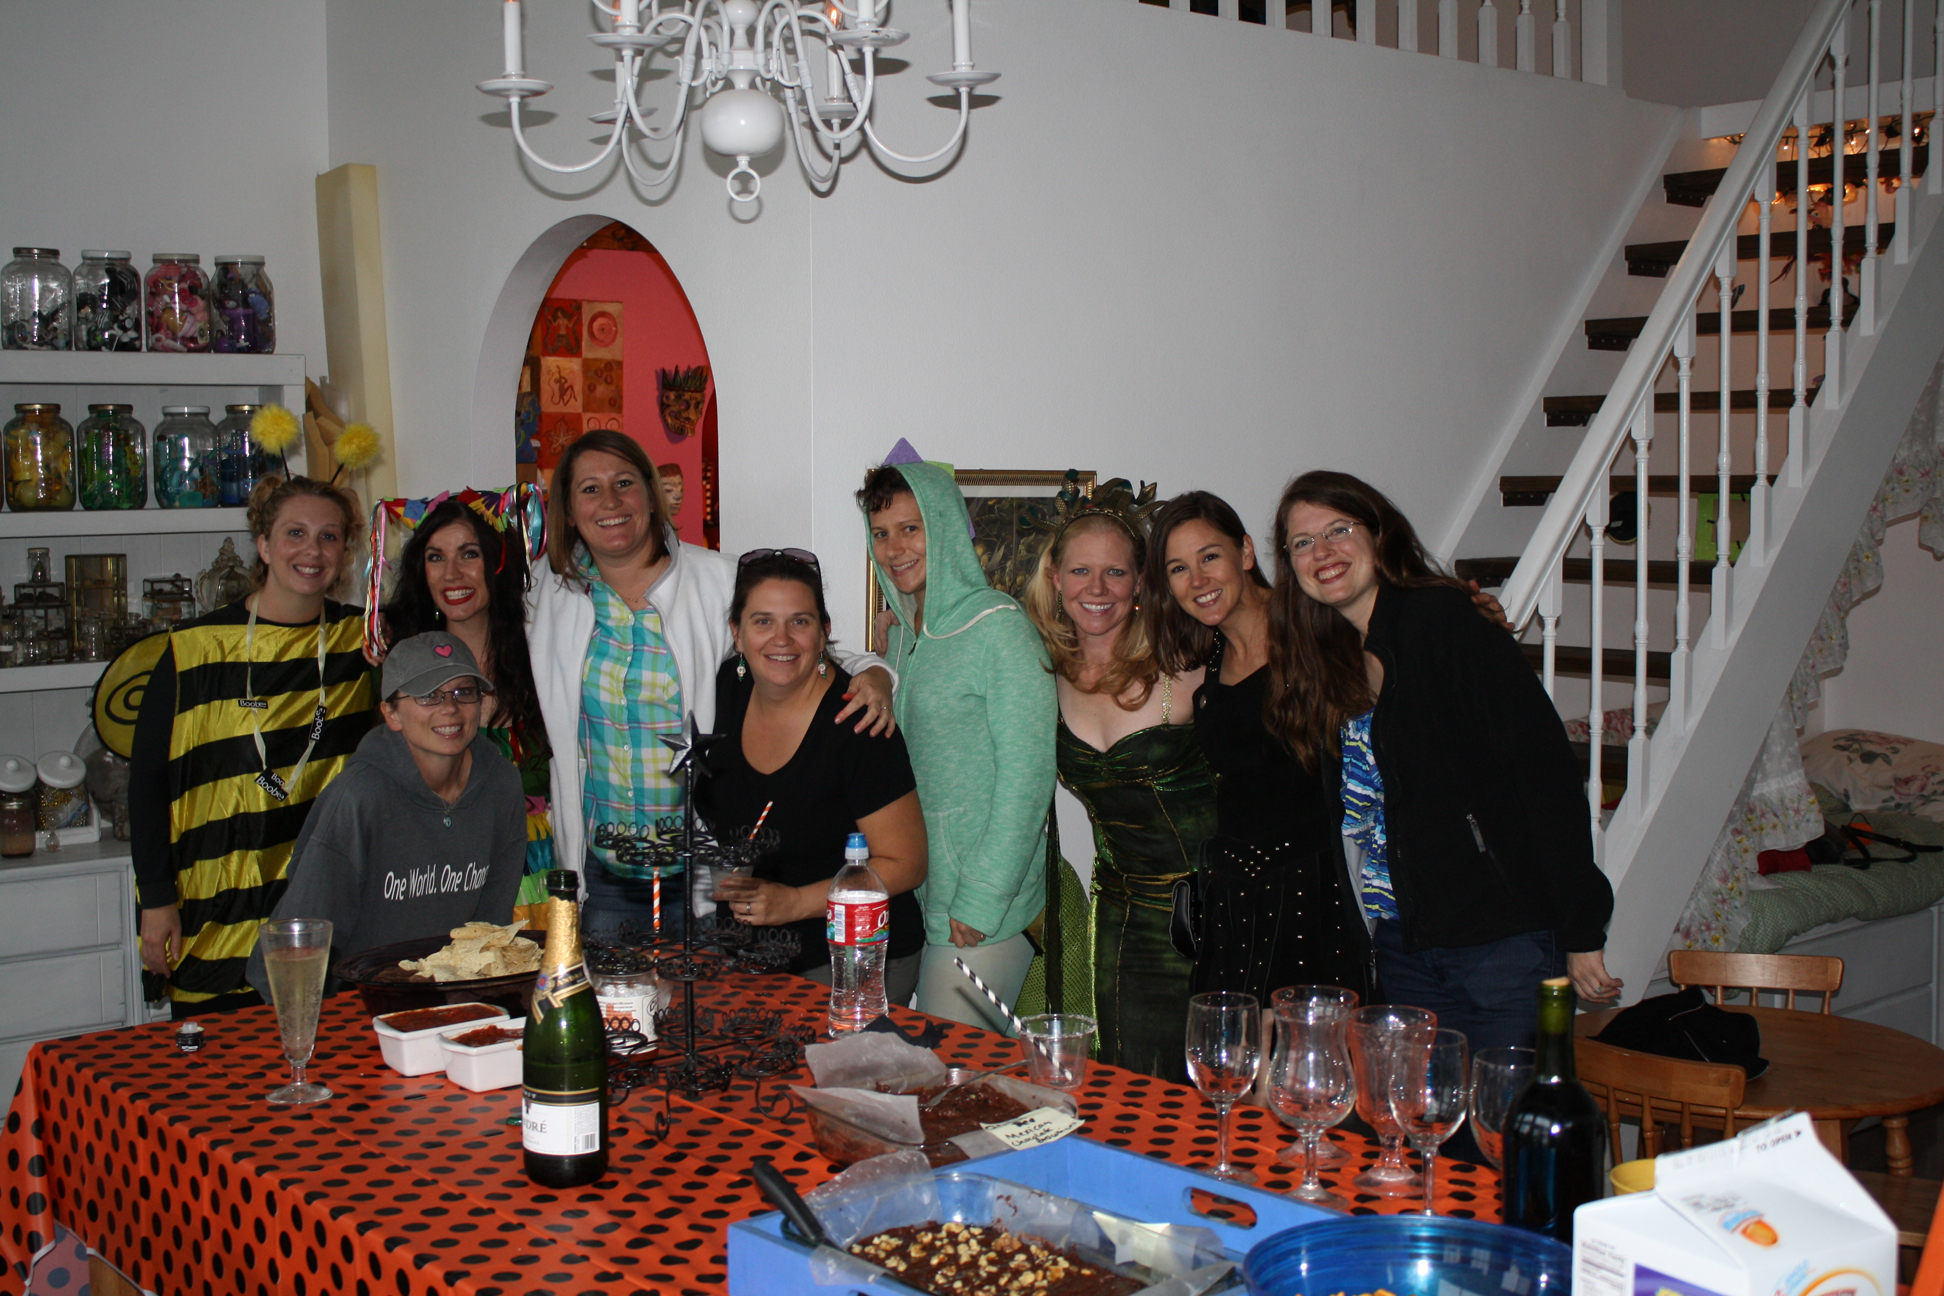 Costume party with friends